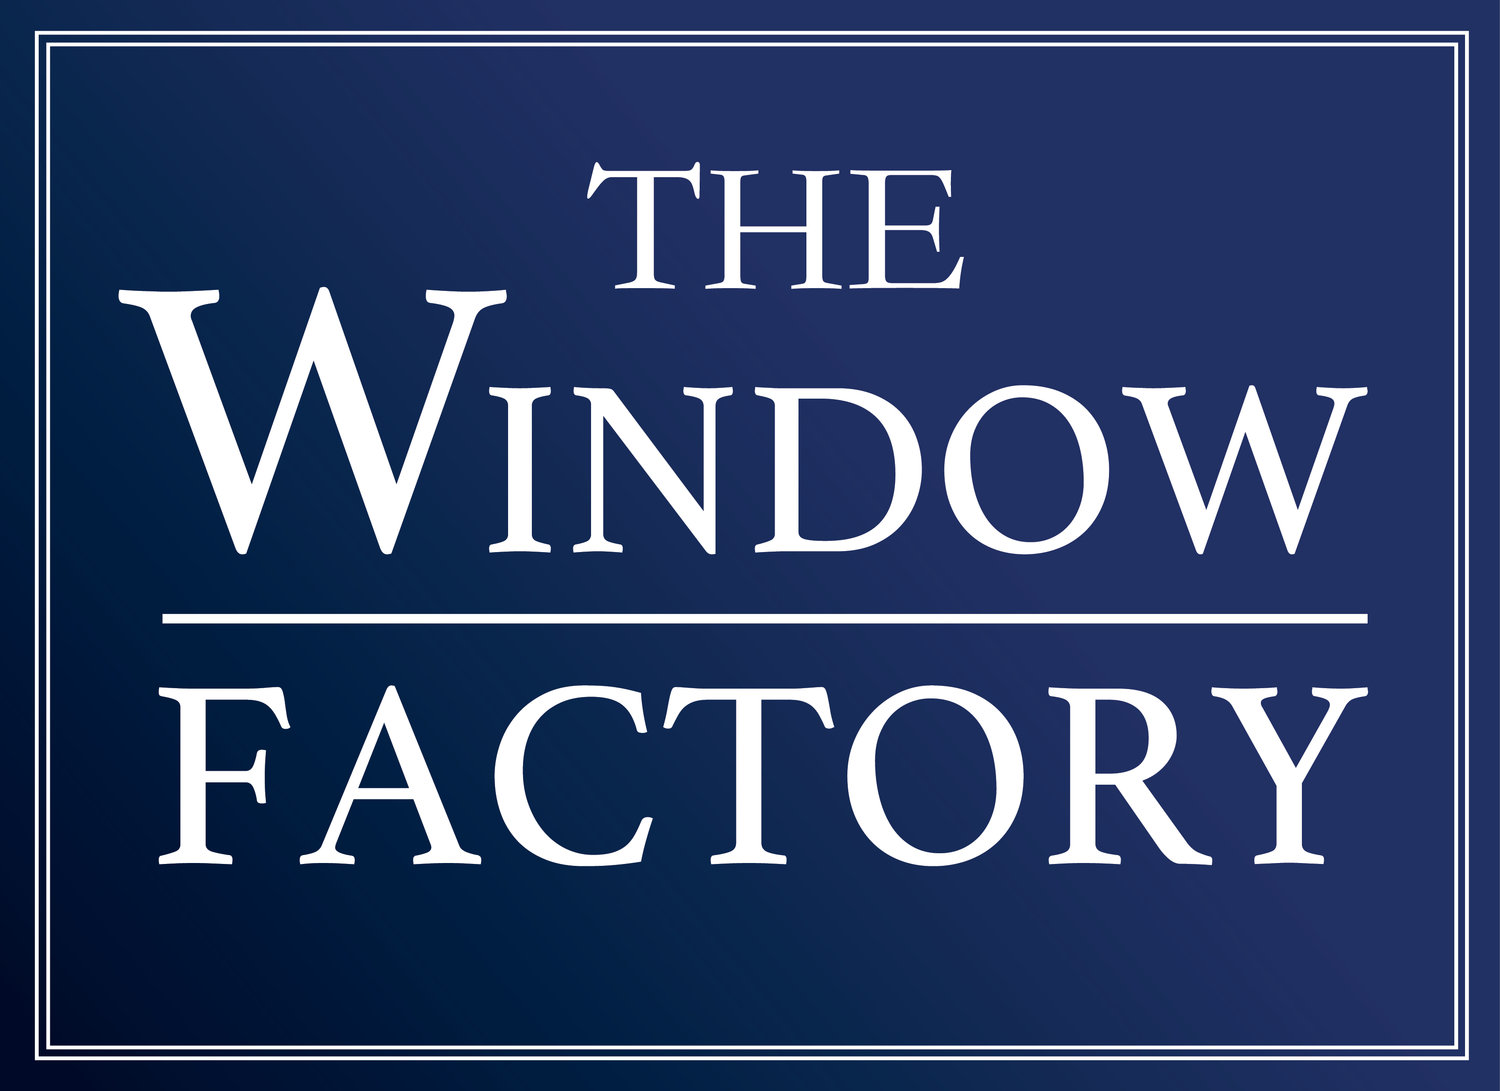 Replacement Windows by The Window Factory